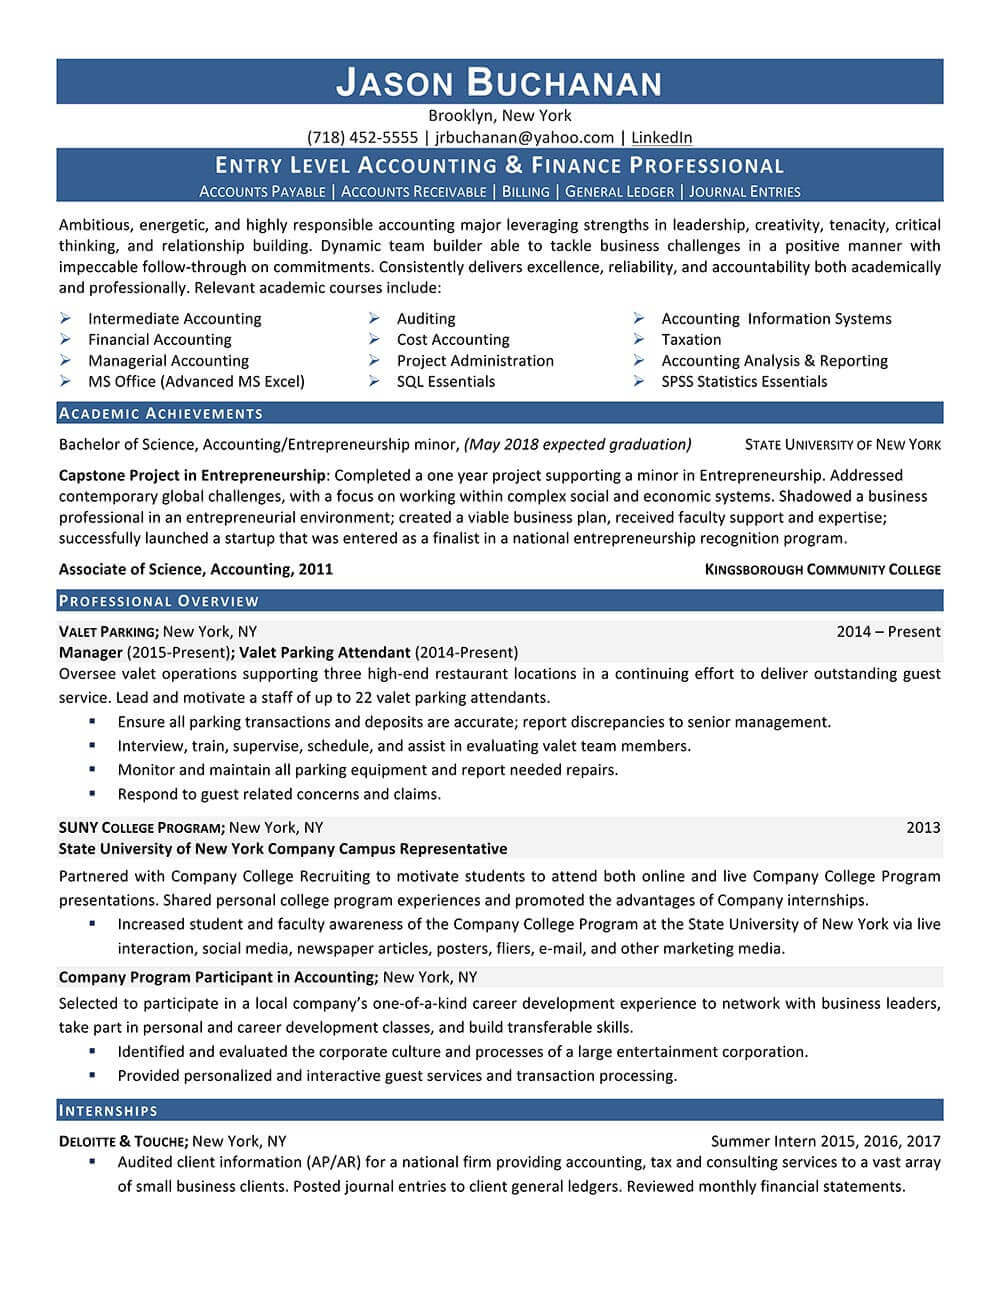 professional resume writing services monster after bartender responsibilities outstanding Resume Monster Resume Writing Services